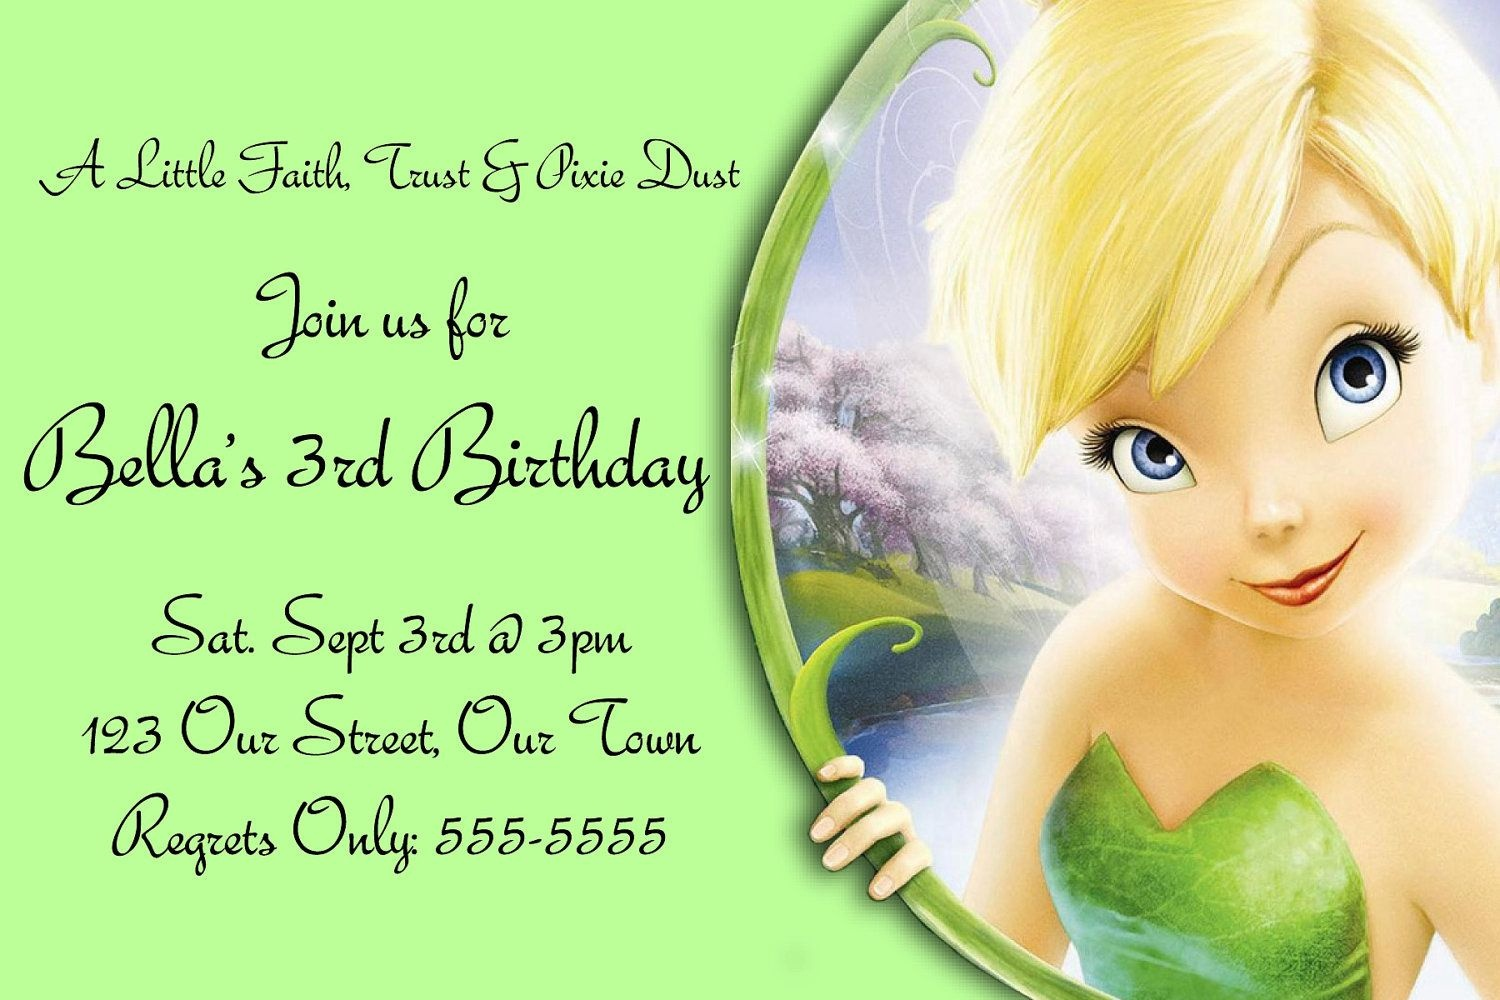 Pindrevio On Free Printable Birthday Invitation In 2019 - Free Printable Tinkerbell Baby Shower Invitations